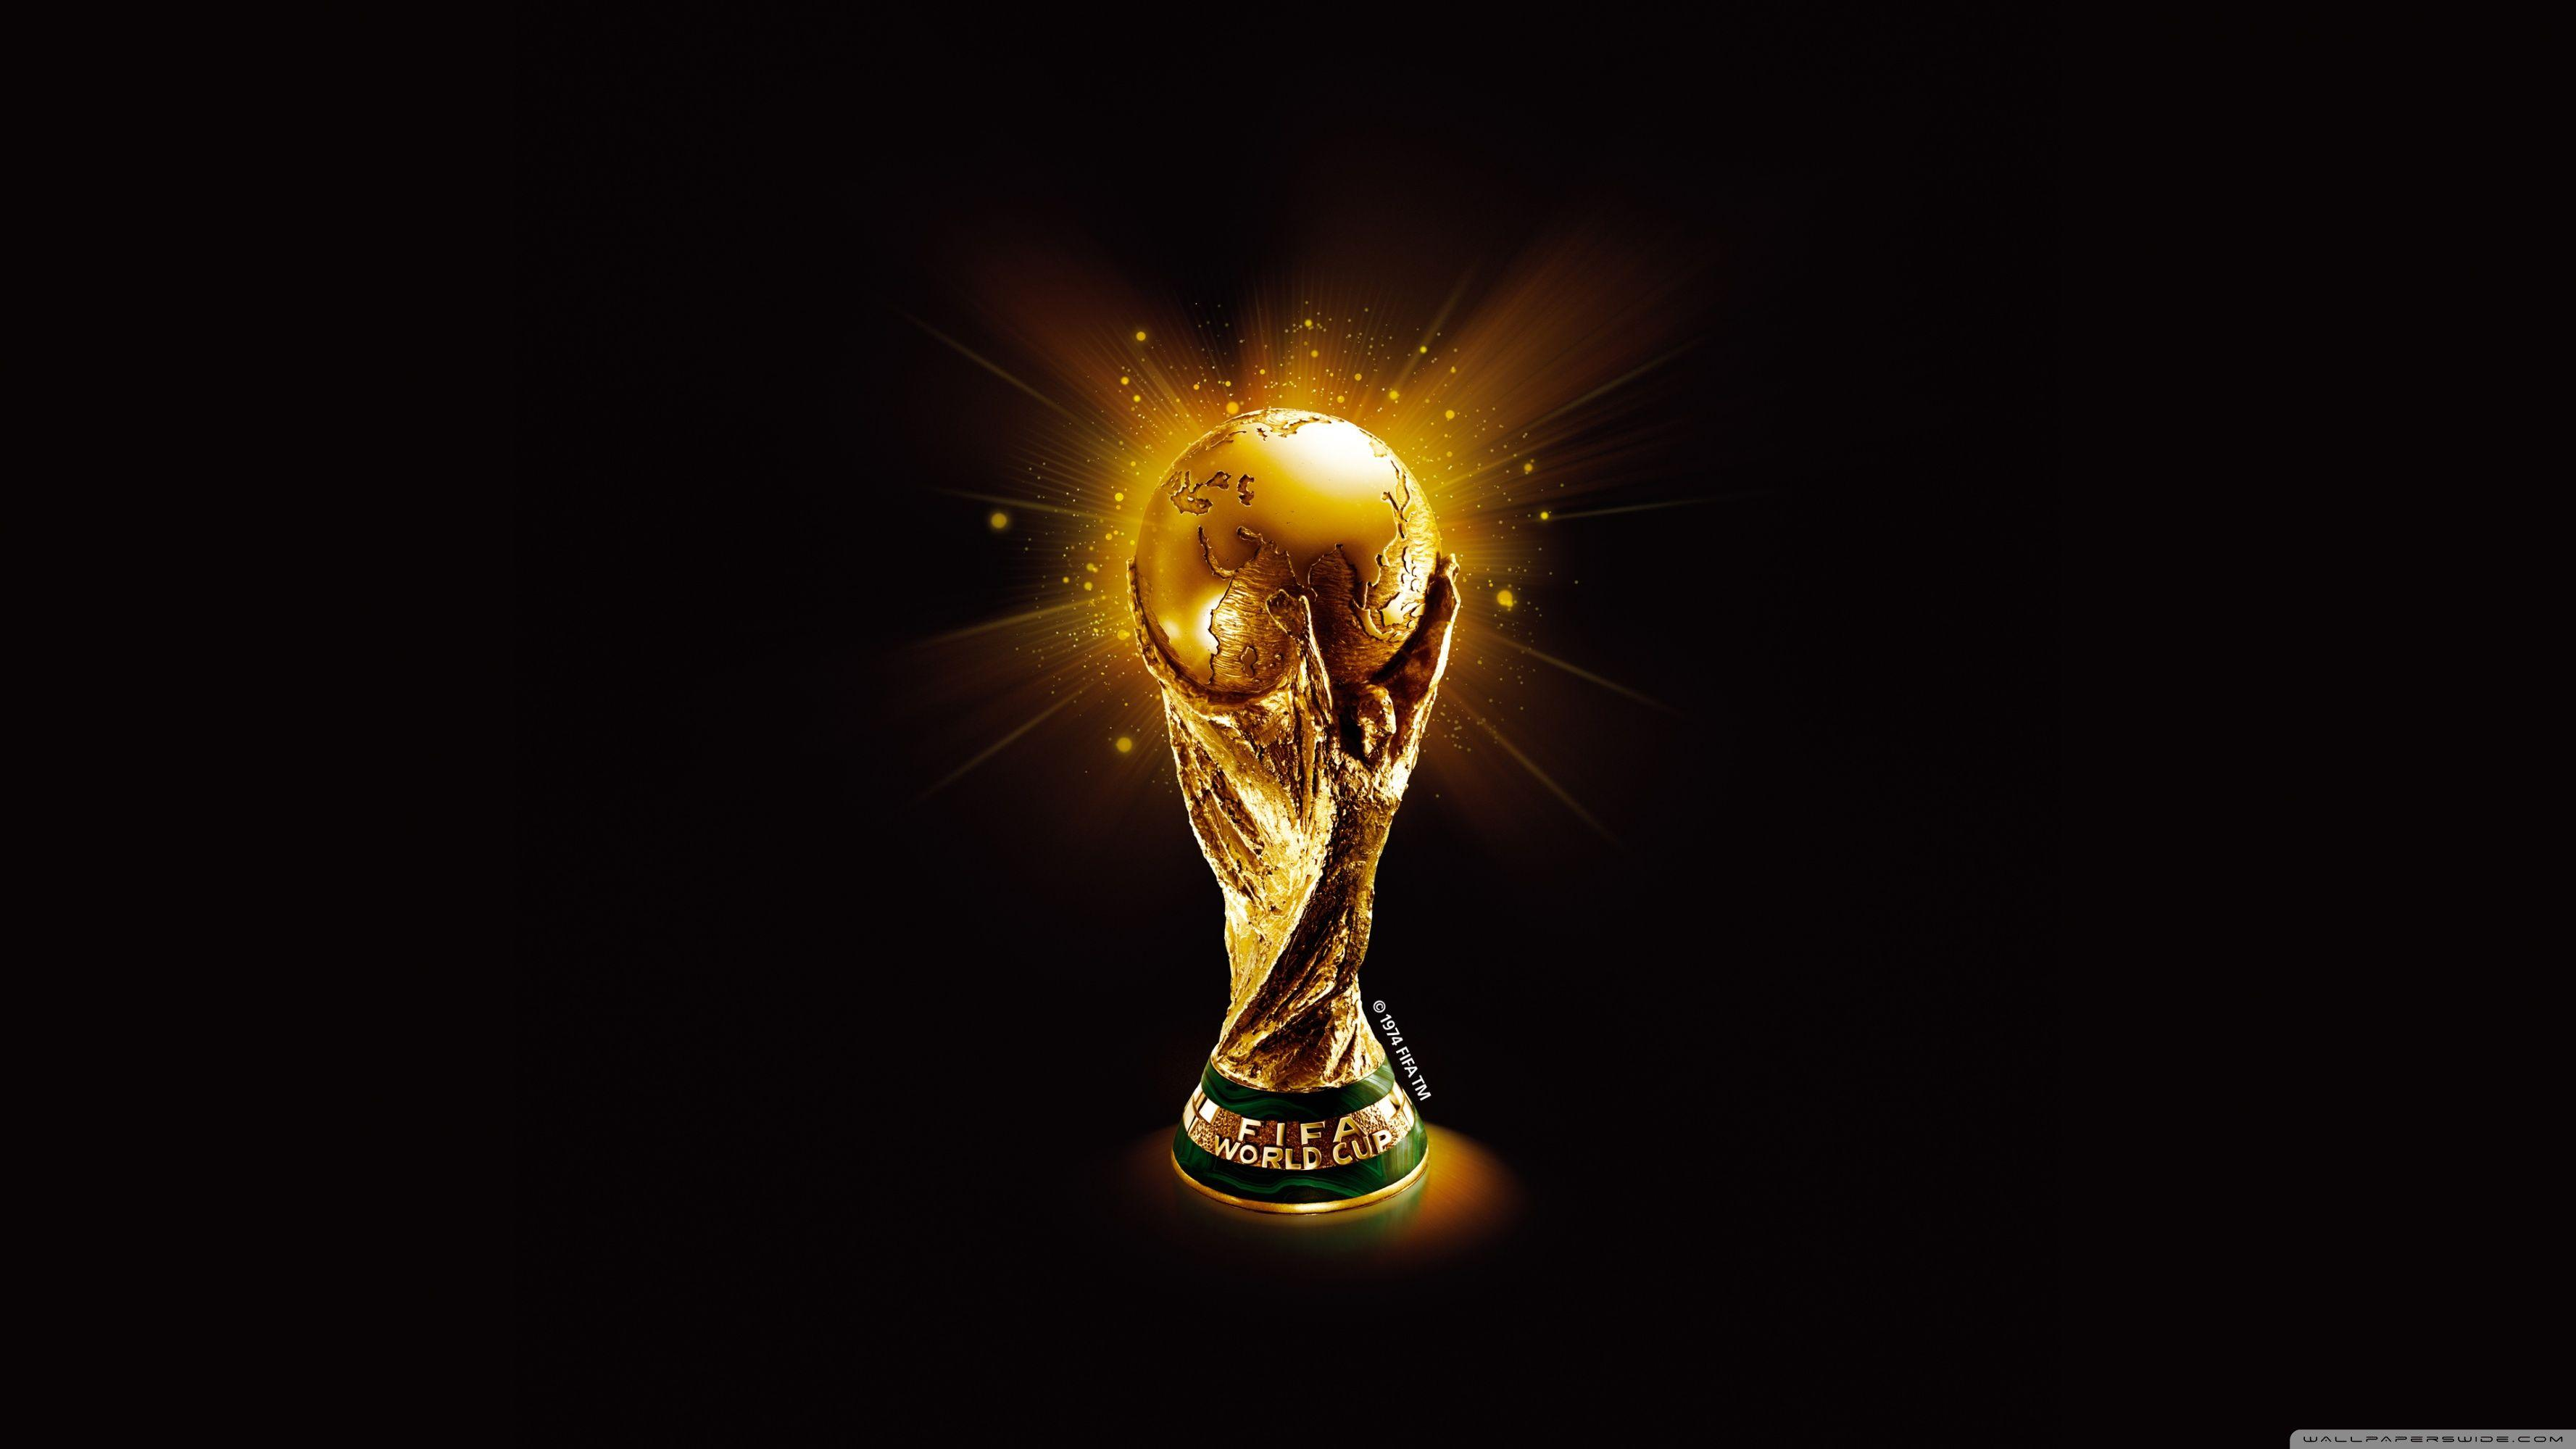 Fifa World Cup 2022 Wallpapers Wallpaper Cave